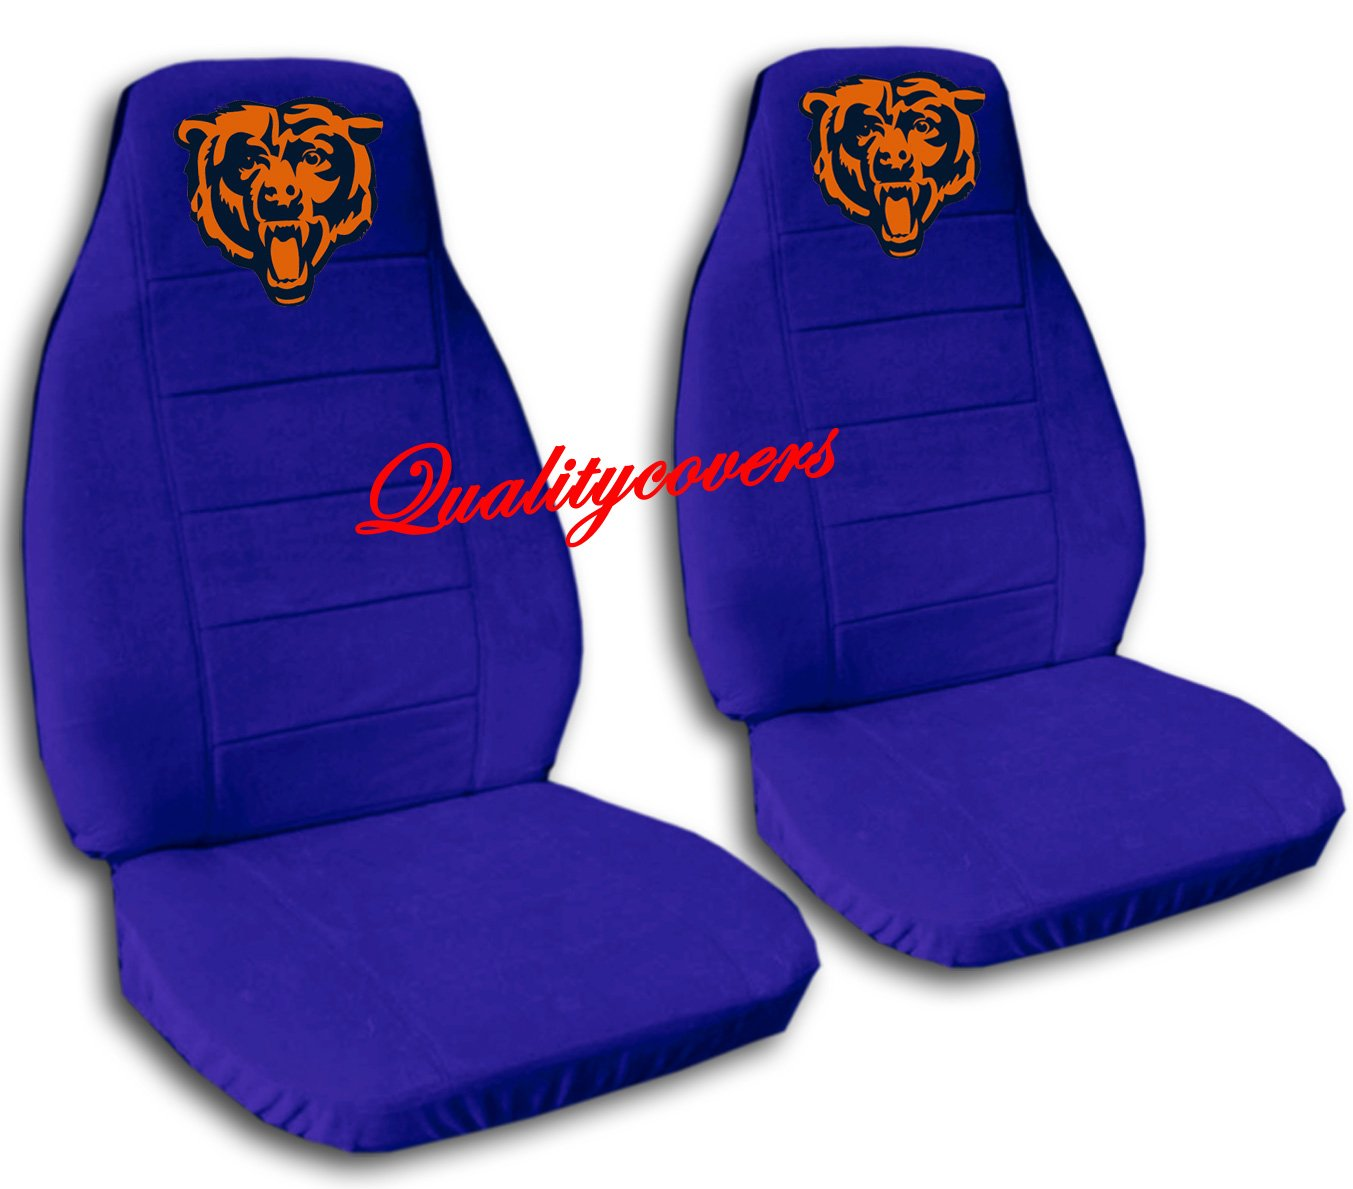 2 Dark Blue Chicago seat covers for a 2007 to 2012 Chevrolet Silverado. Side airbag friendly.